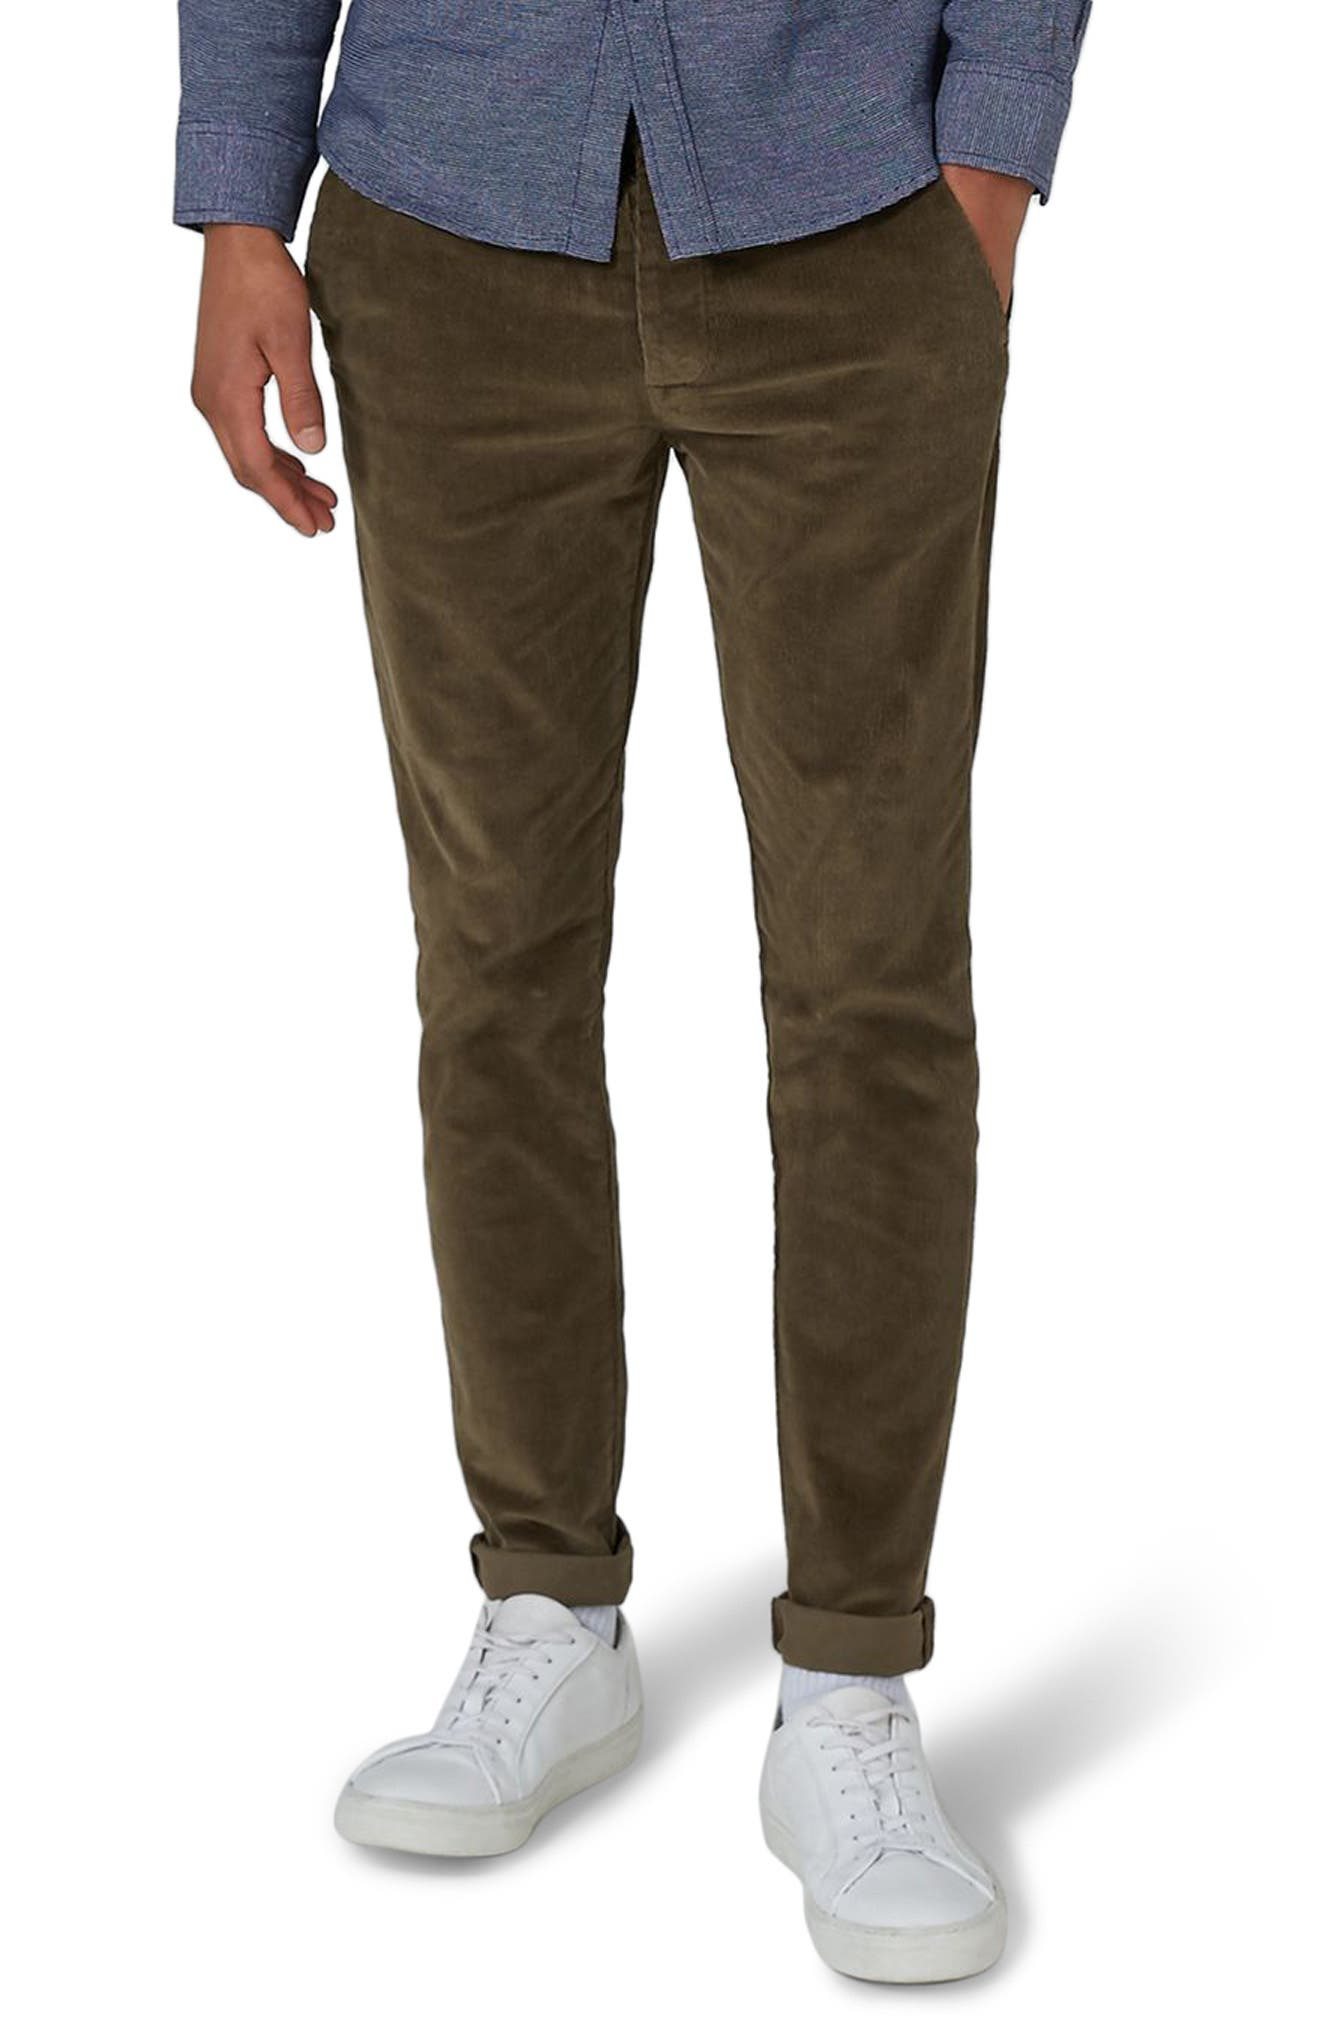 Skinny Fit Corduroy Trousers,                             Main thumbnail 1, color,